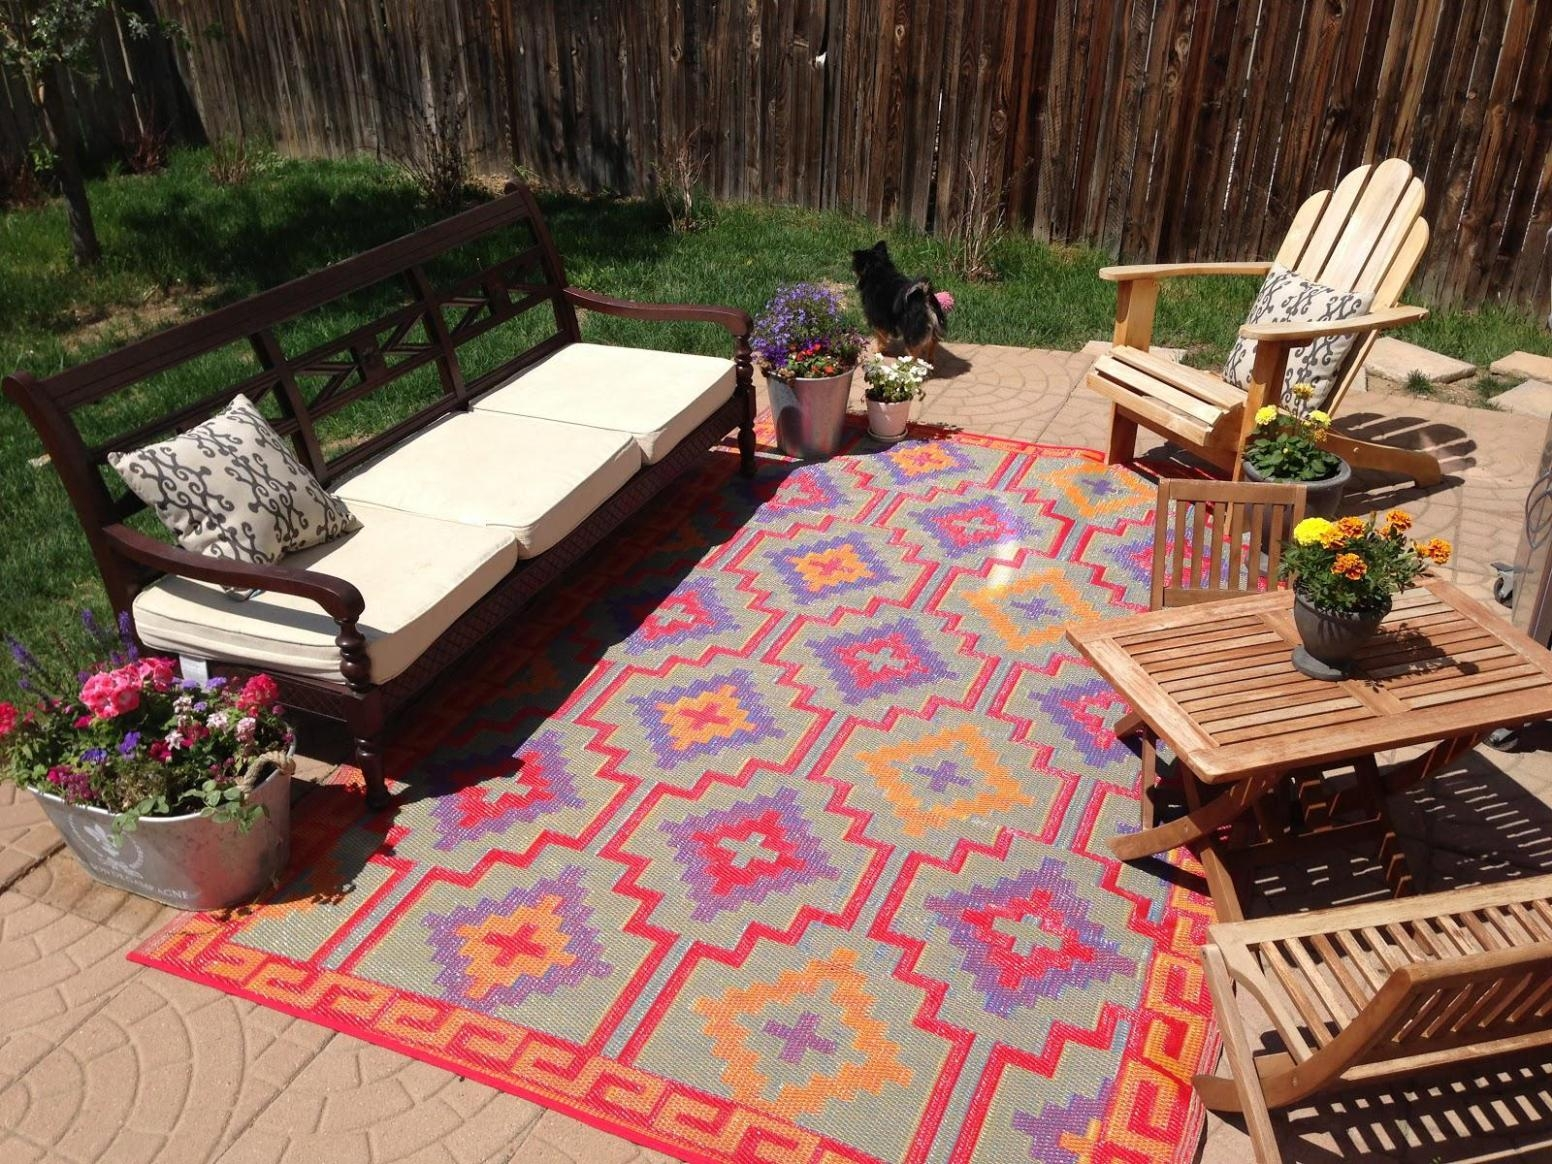 Outdoor Carpets For Decks Or Patios Doherty House Best Large With Regard To Outside Rugs For Decks (Image 5 of 15)